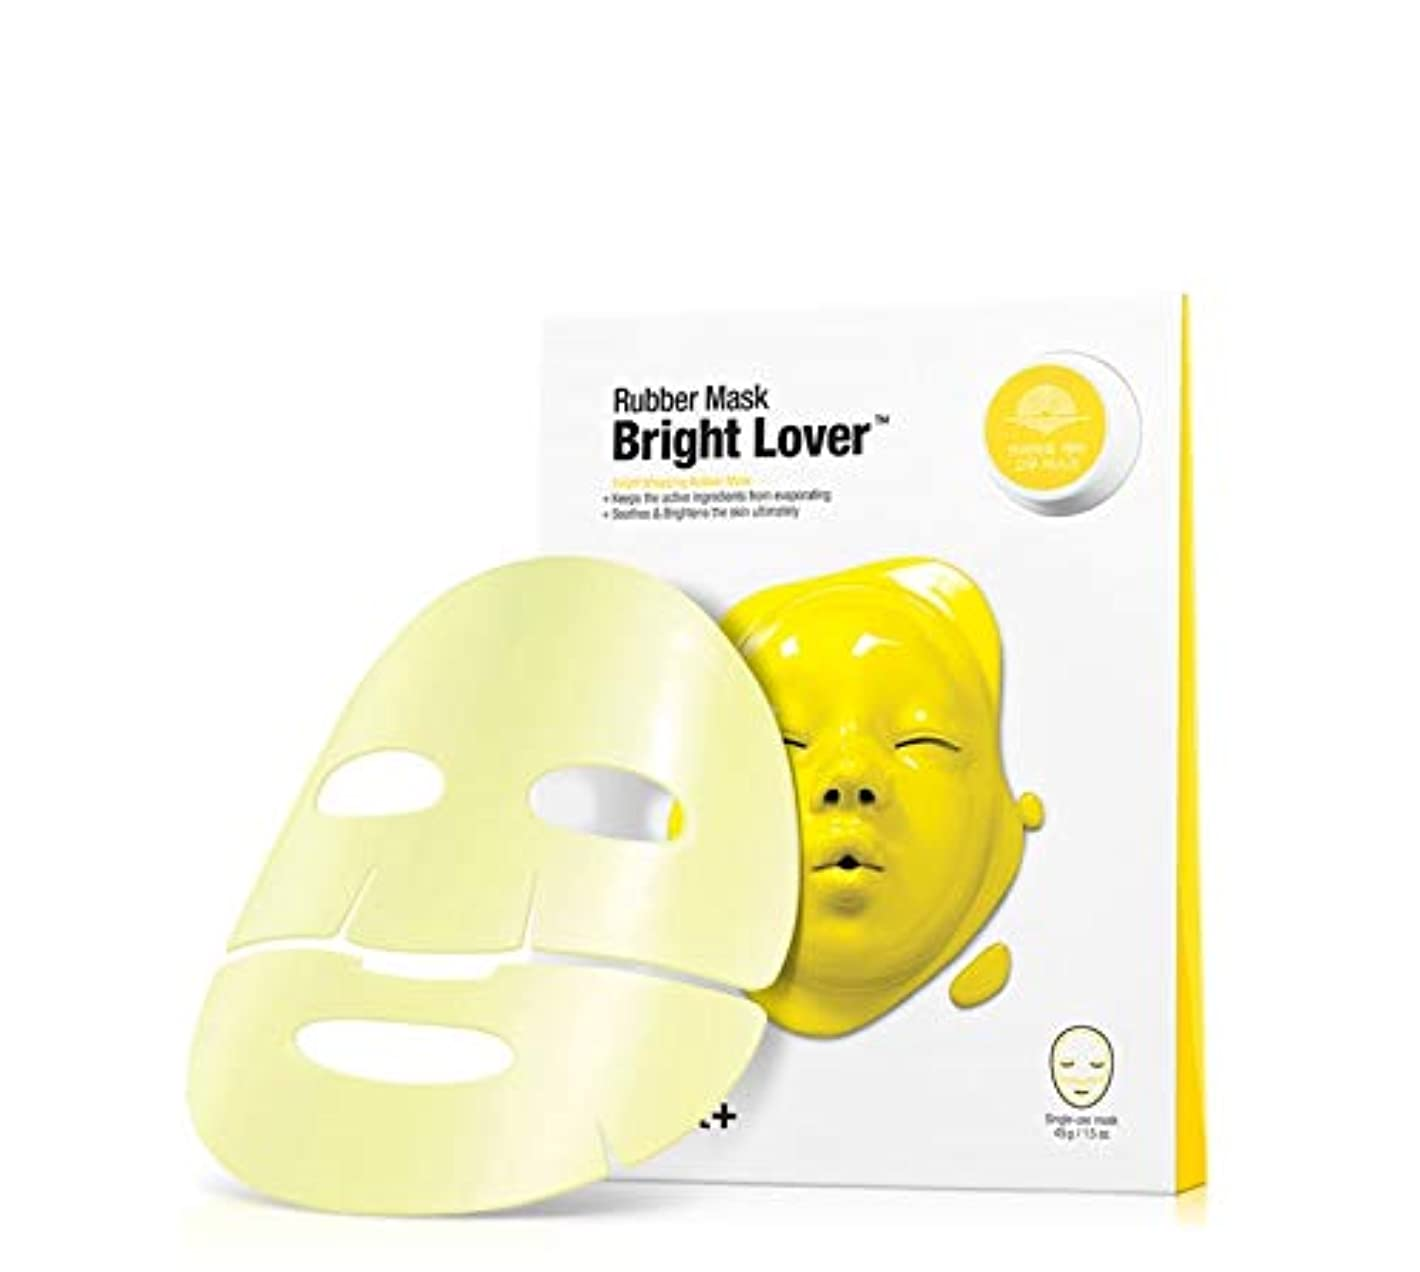 メロドラマ毎日ウェブDr. Jart Dermask Rubber Mask 1.5oz 1pcs (Bright Lover)